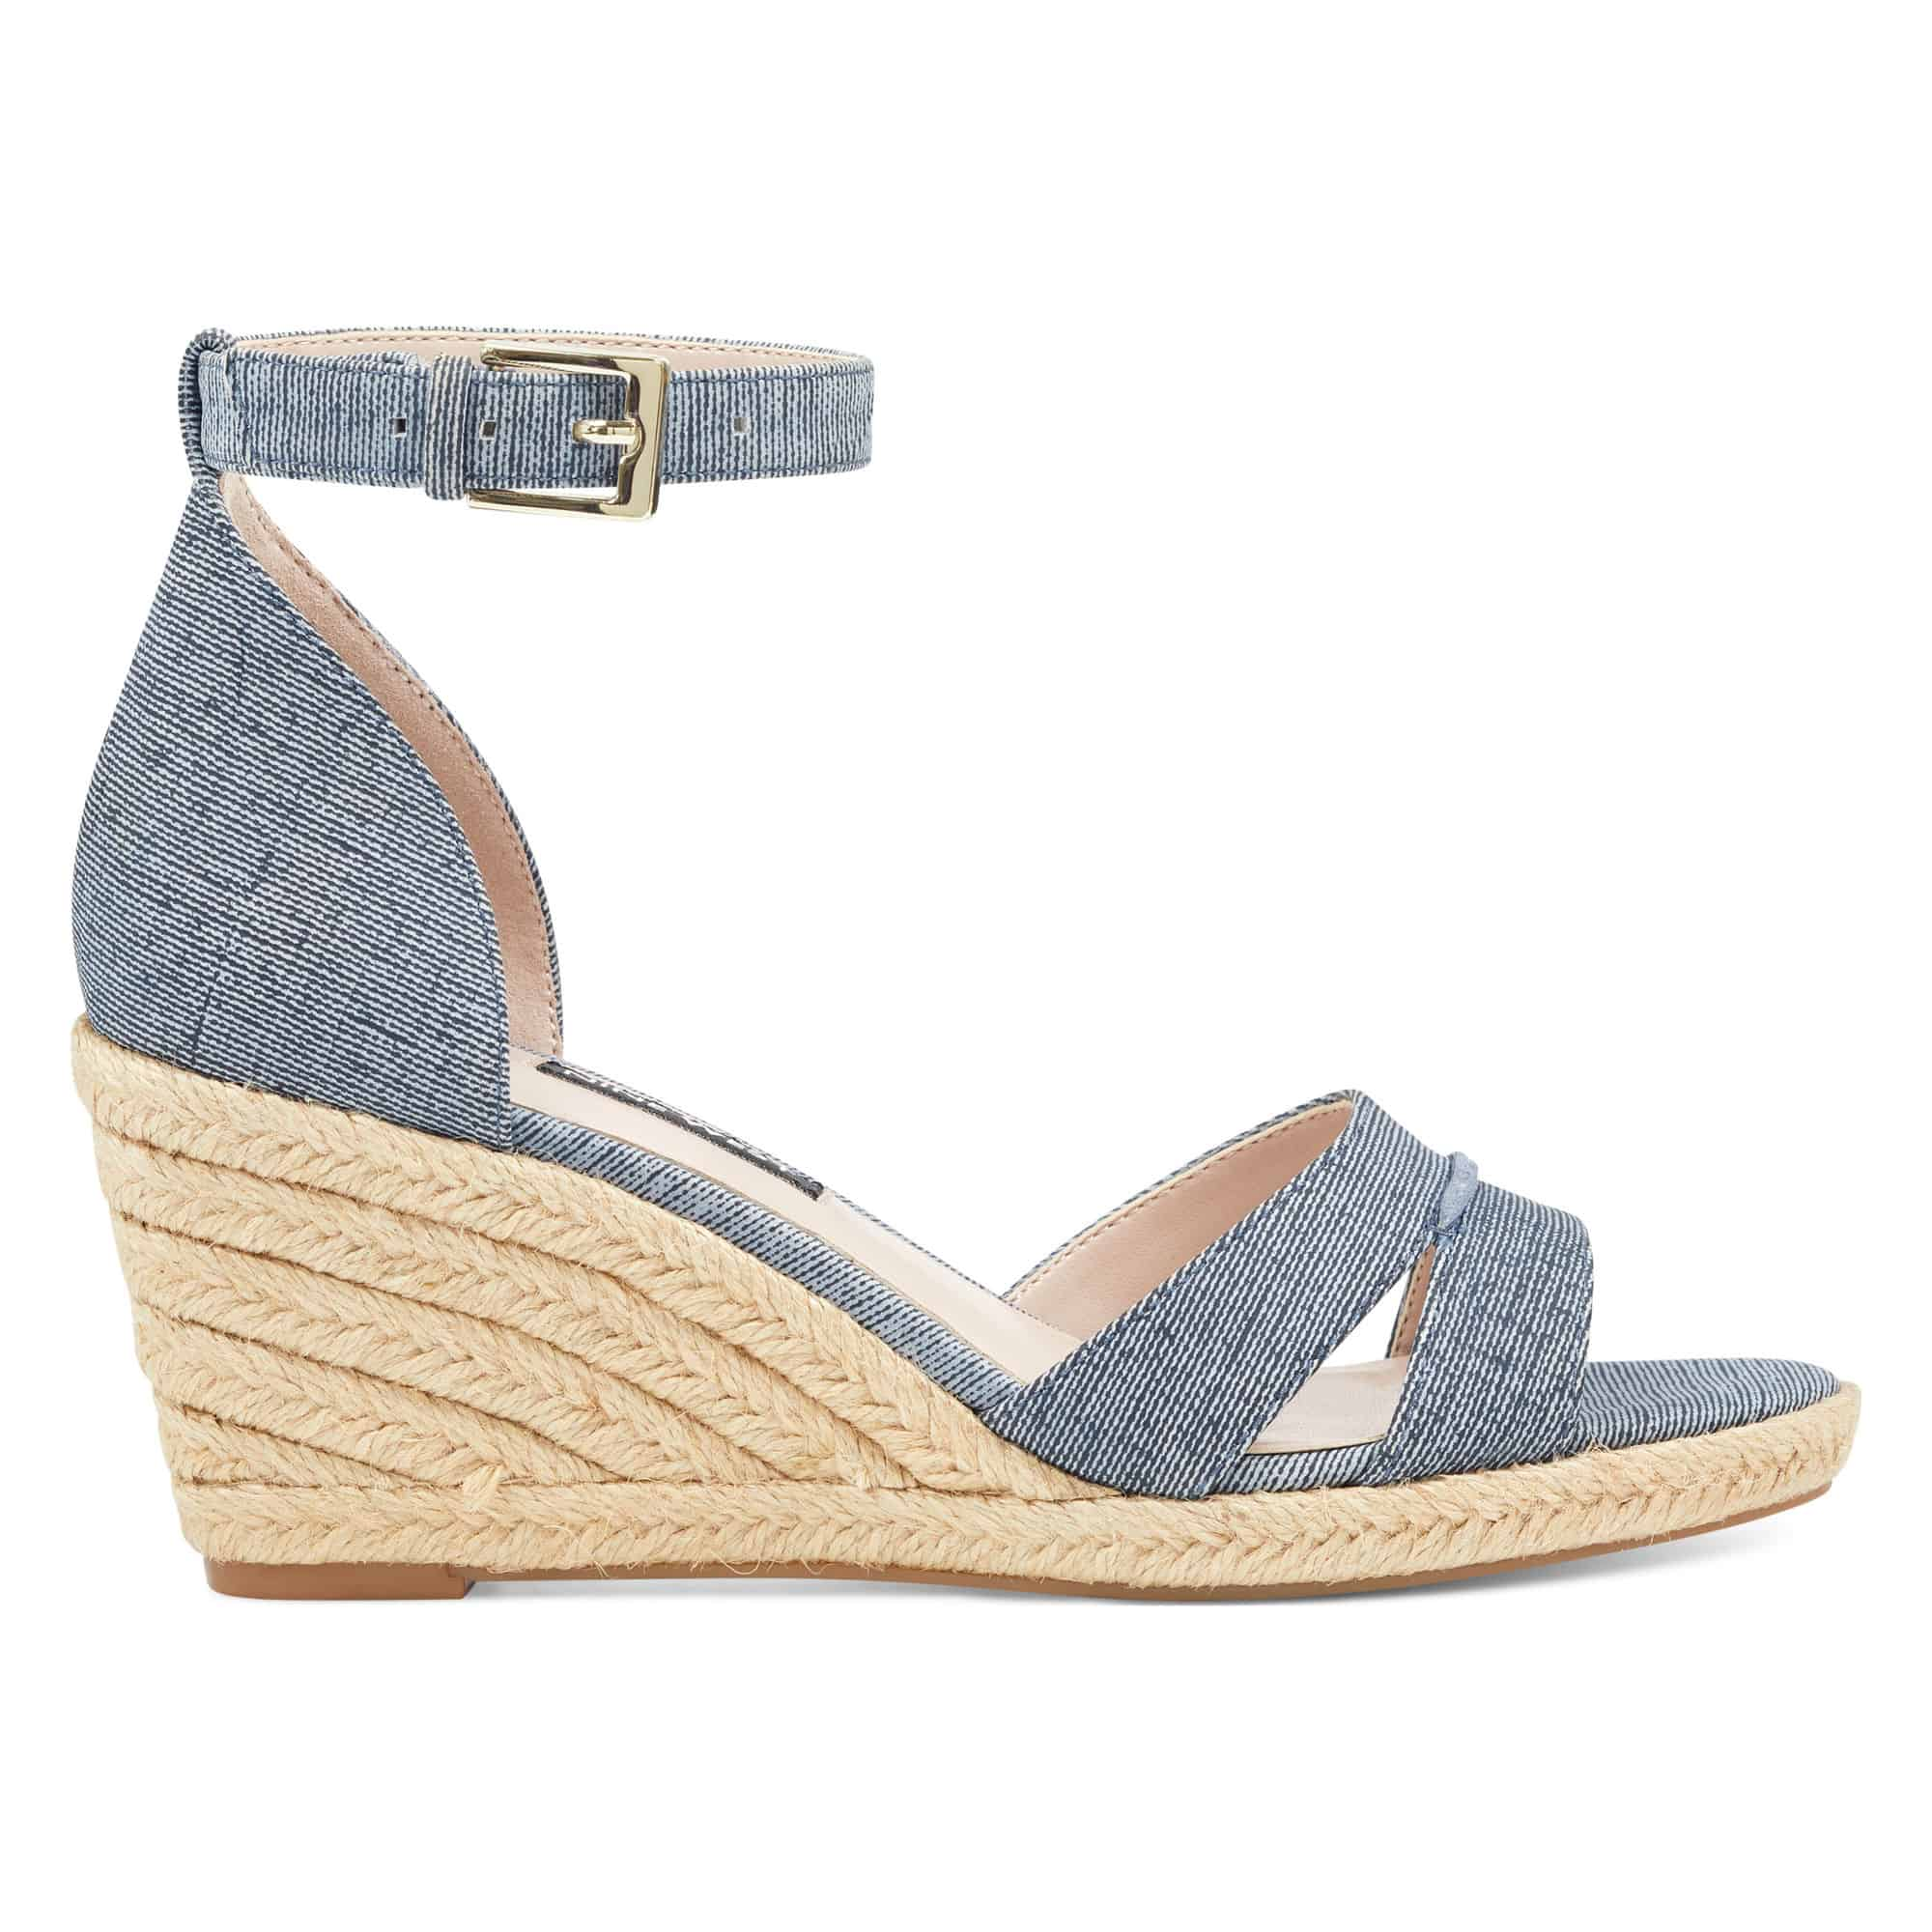 Wedge sandale with chambray strap